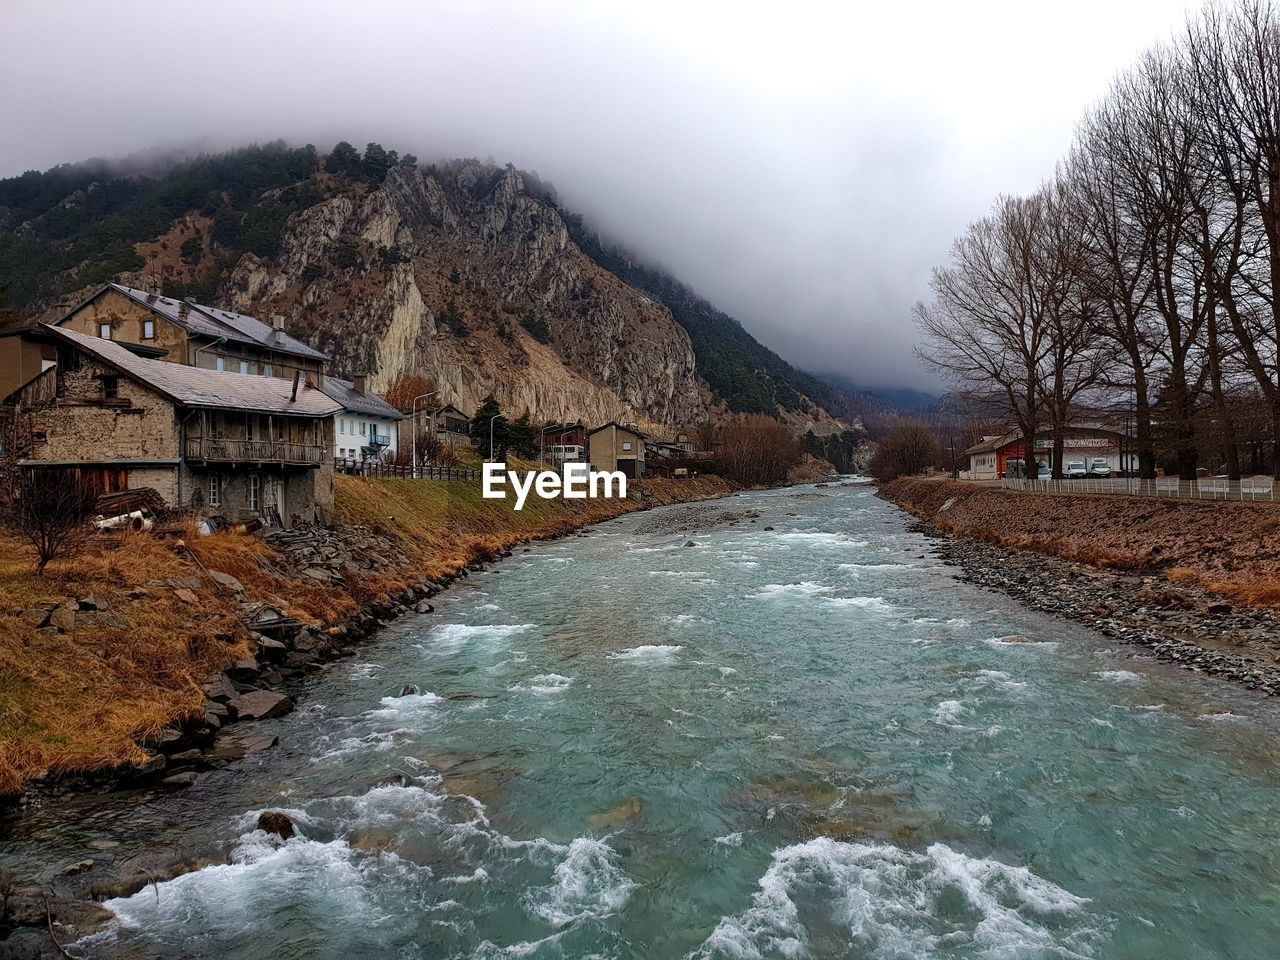 water, built structure, architecture, sky, nature, river, tree, no people, scenics - nature, mountain, beauty in nature, day, flowing water, motion, plant, hydroelectric power, flowing, dam, outdoors, stream - flowing water